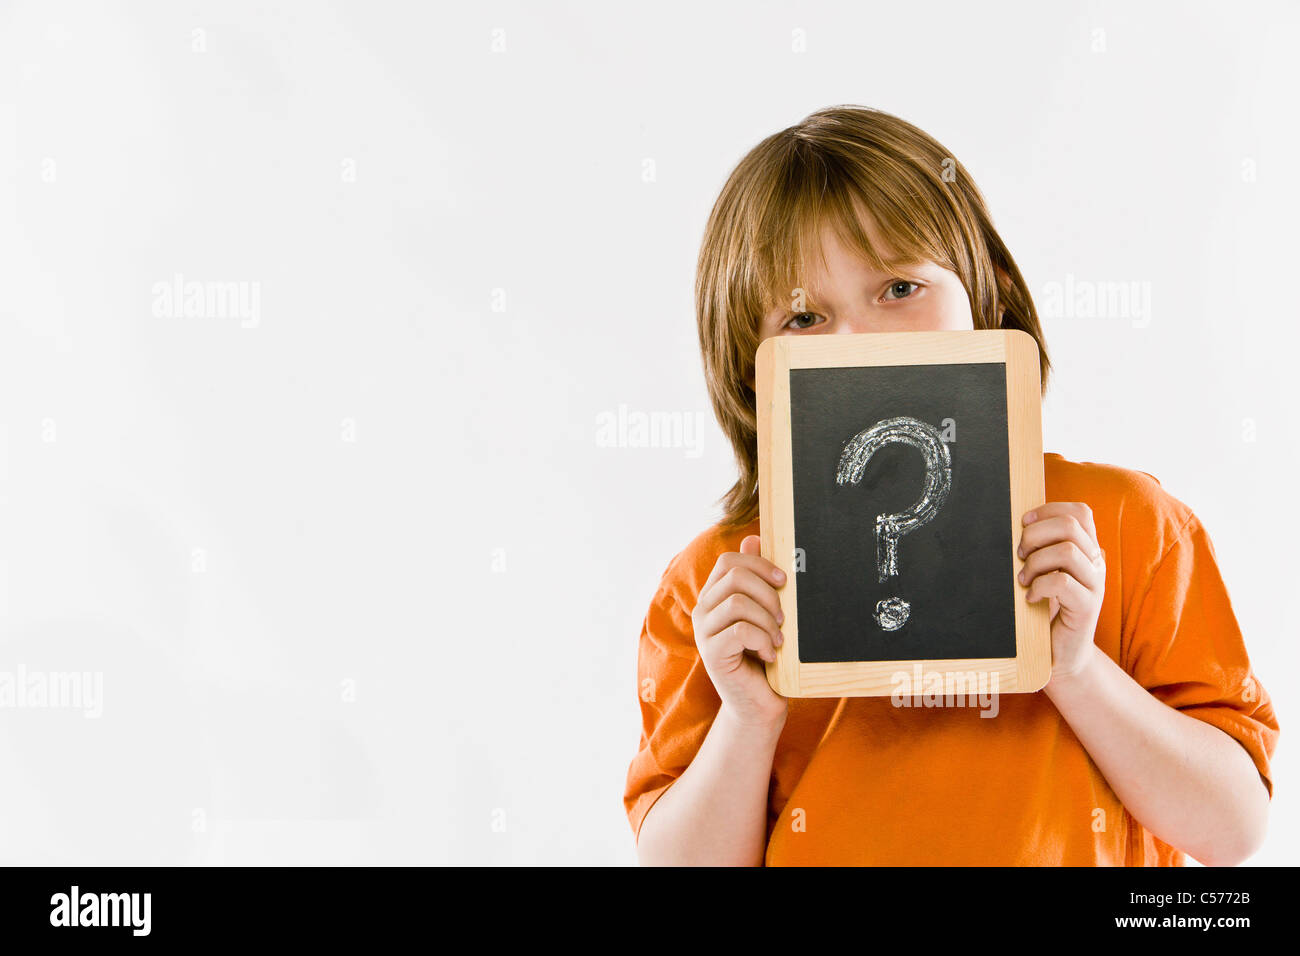 Boy holding question mark on chalkboard - Stock Image